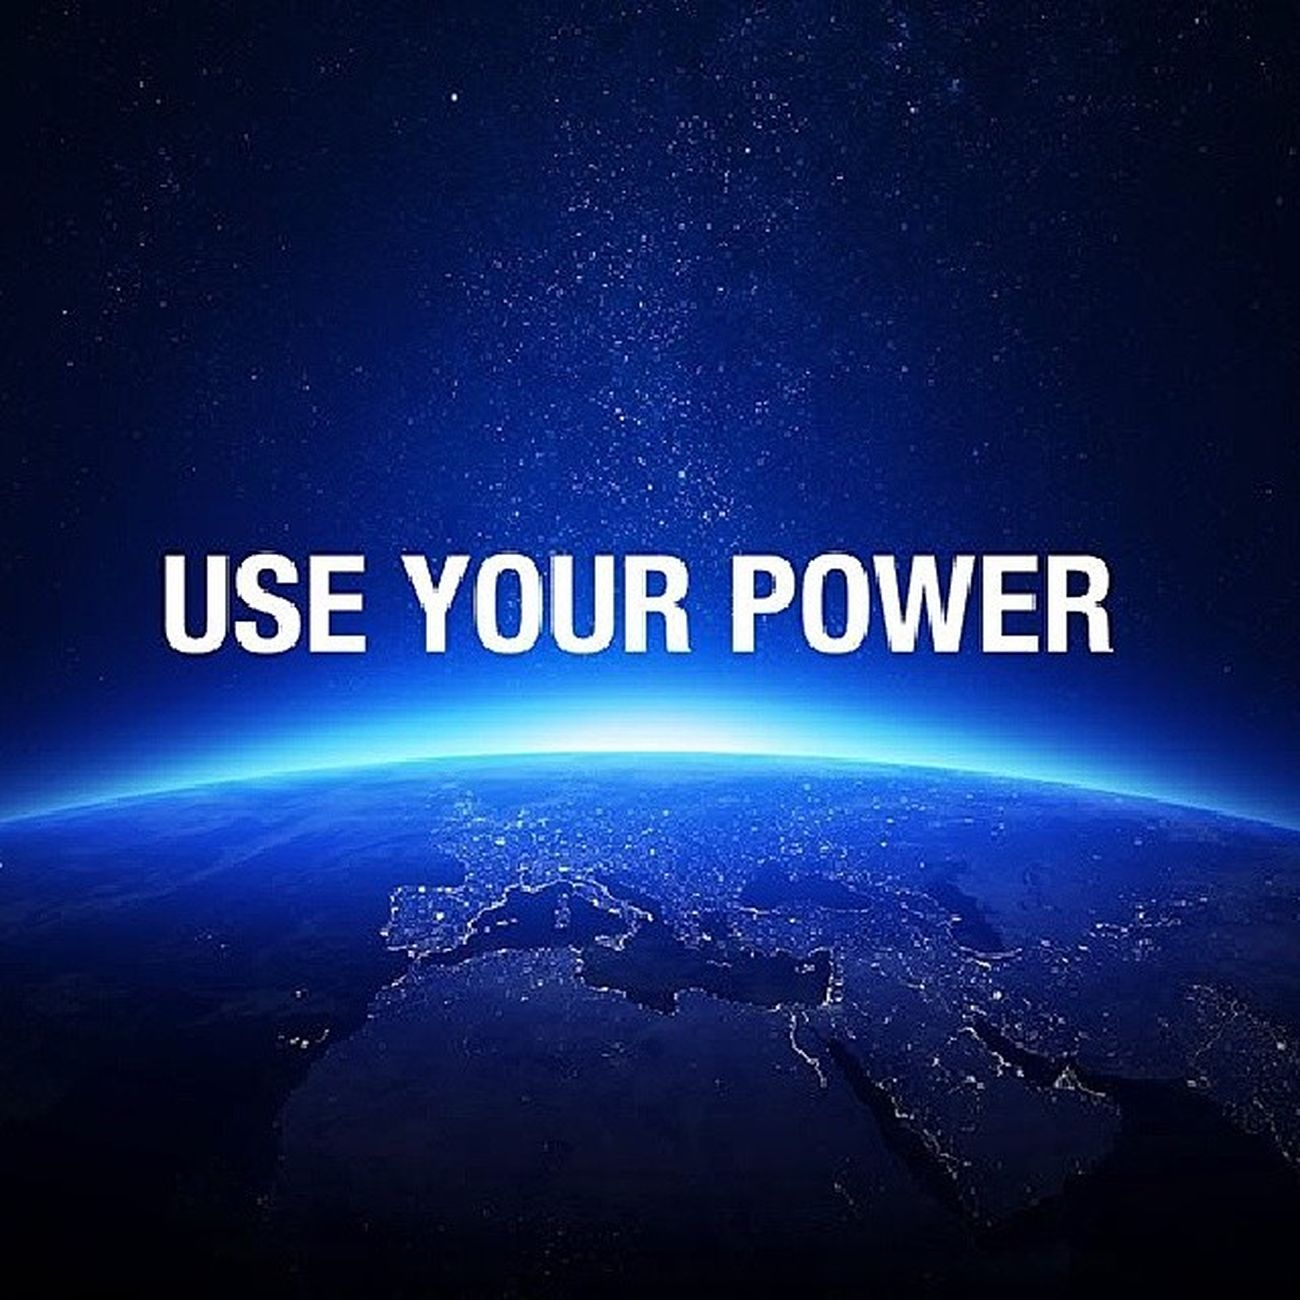 Never ever underestimate your power! Switch off your light during Earth Hour Hkig 2014 Earthhour Wwfhk useyourpower 世界自然基金會 地球一小時 @wwfhk @earthhourofficial